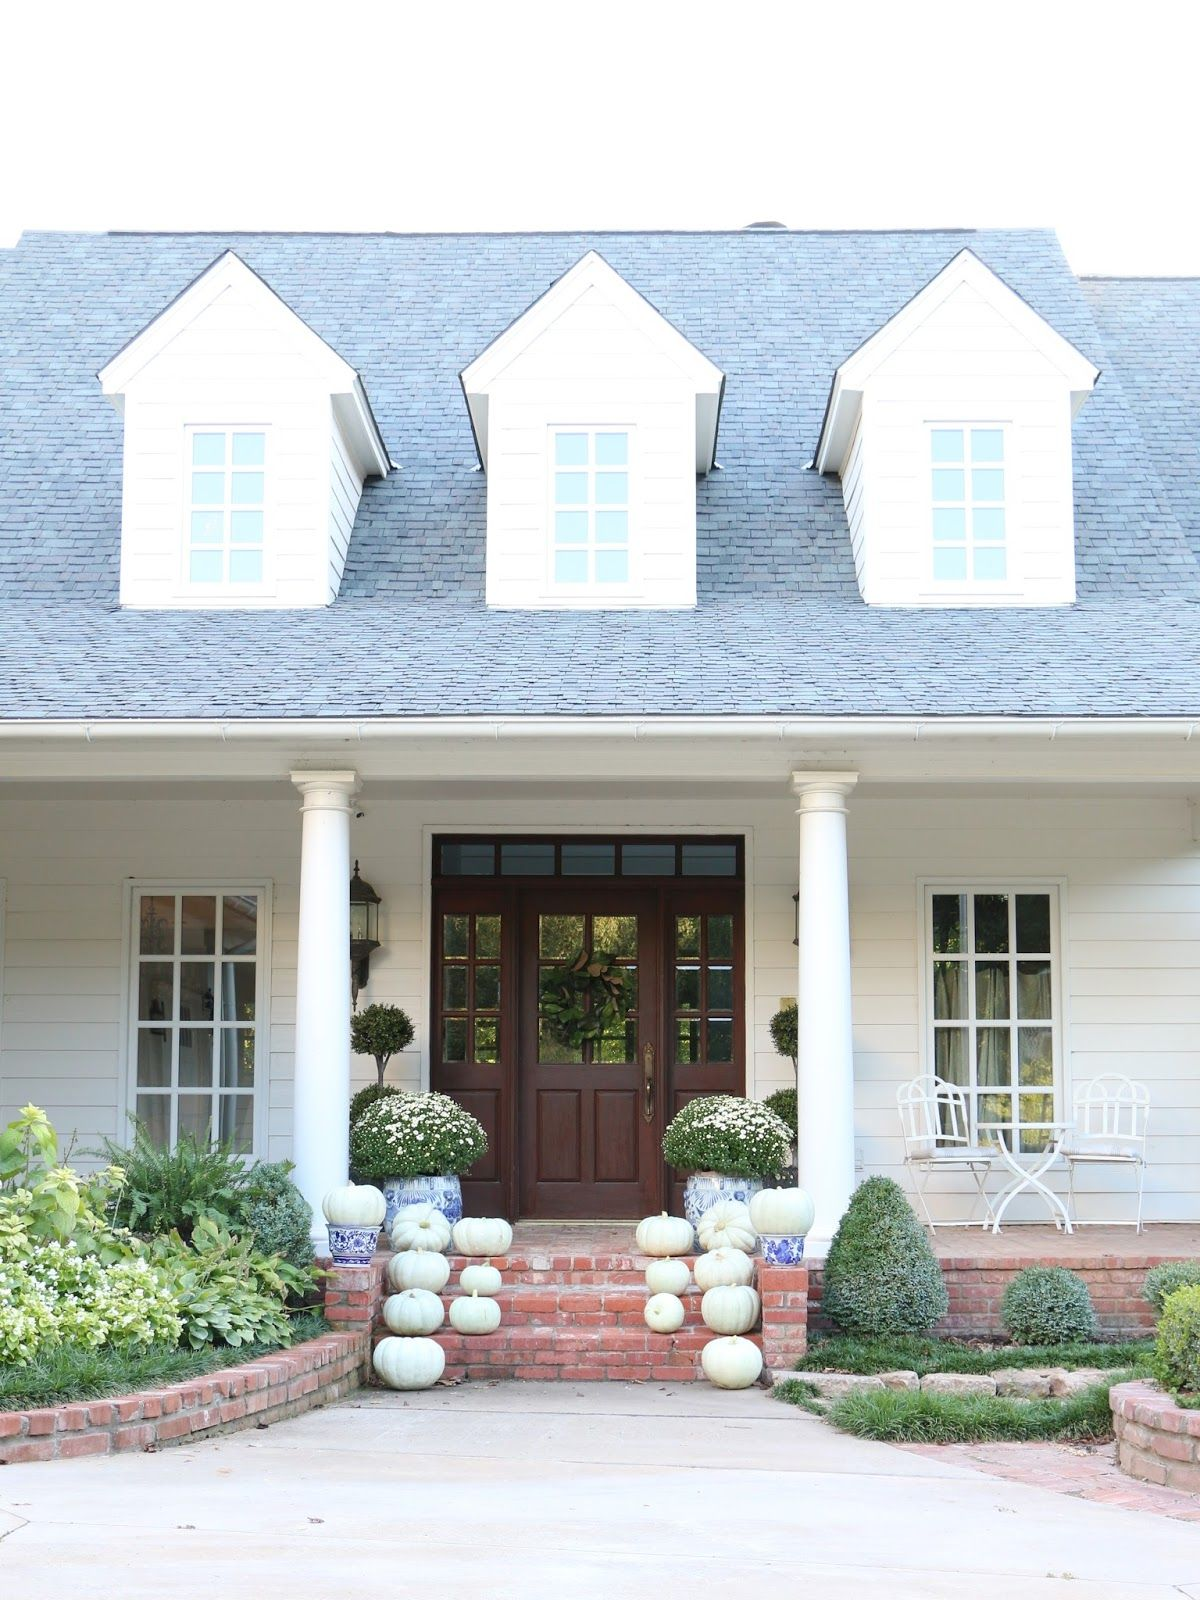 French Country Fall Home tour with Soft Surroundings and